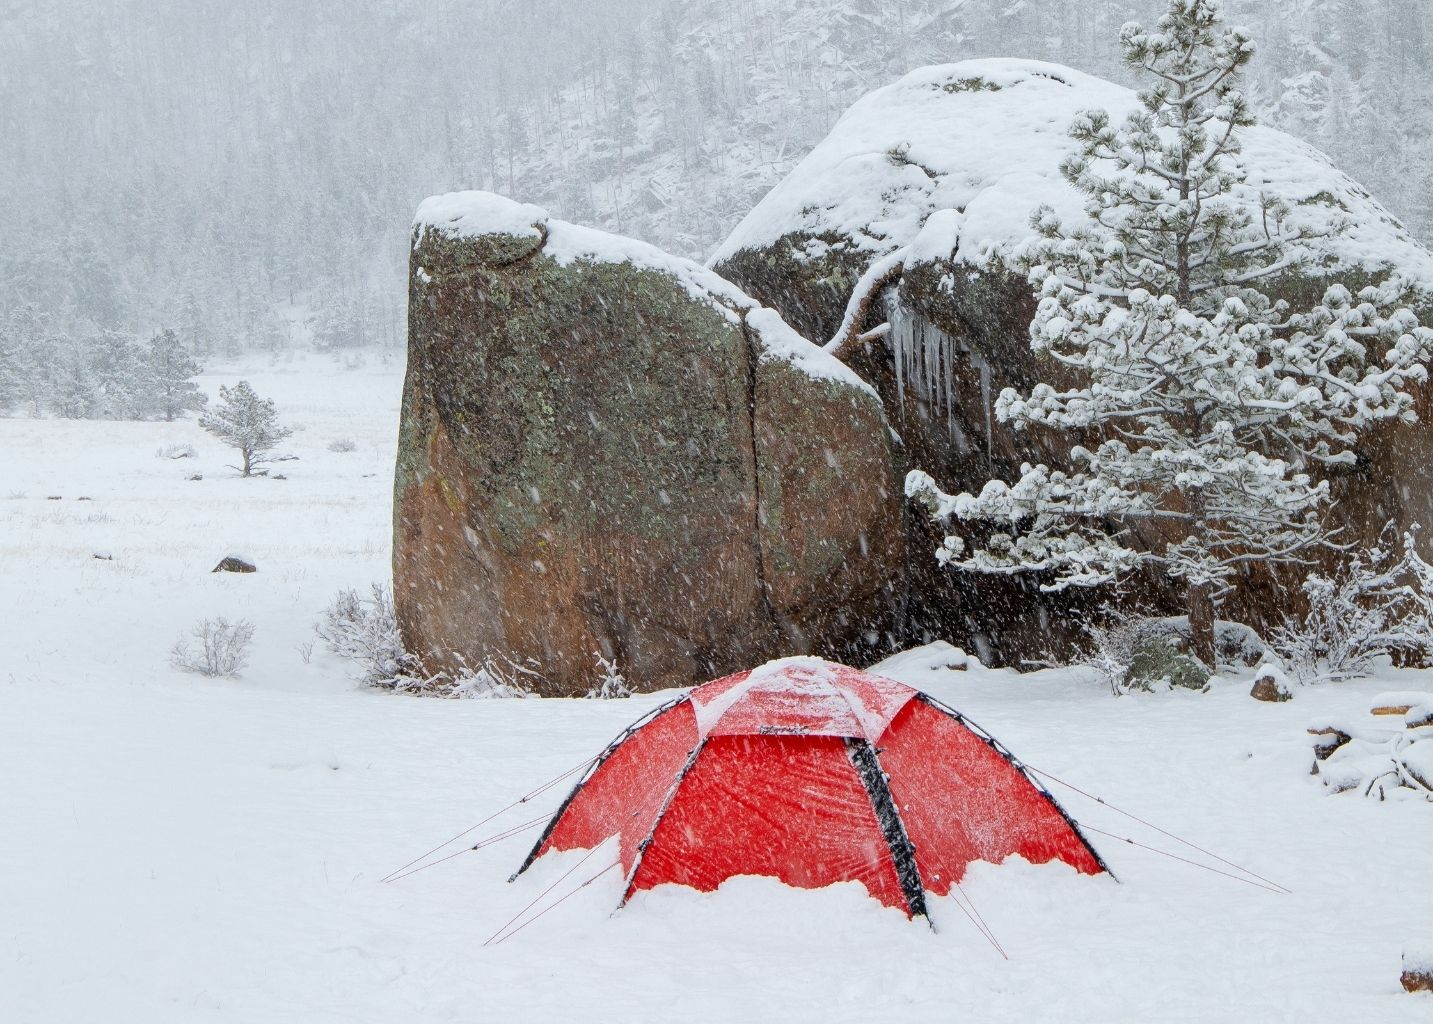 The Best Gear for Winter Camping